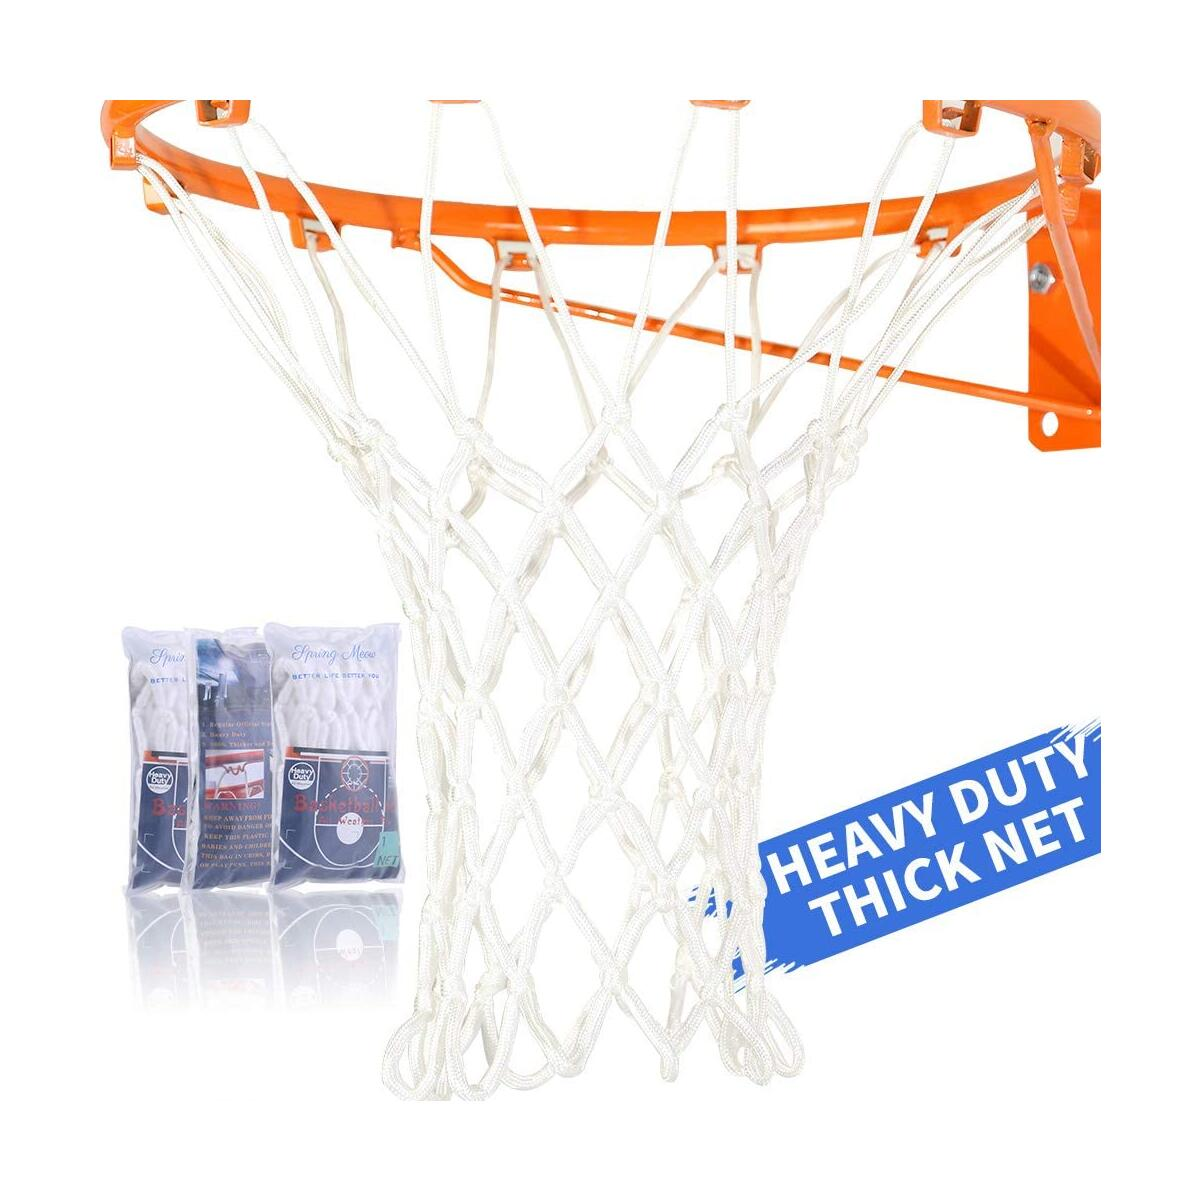 Basketball Net, Heavy Duty Basketball Net Replacement for Basketball Hoop, All Weather Fits Standard Indoor or Outdoor 12 Loops Rims 12 Loops